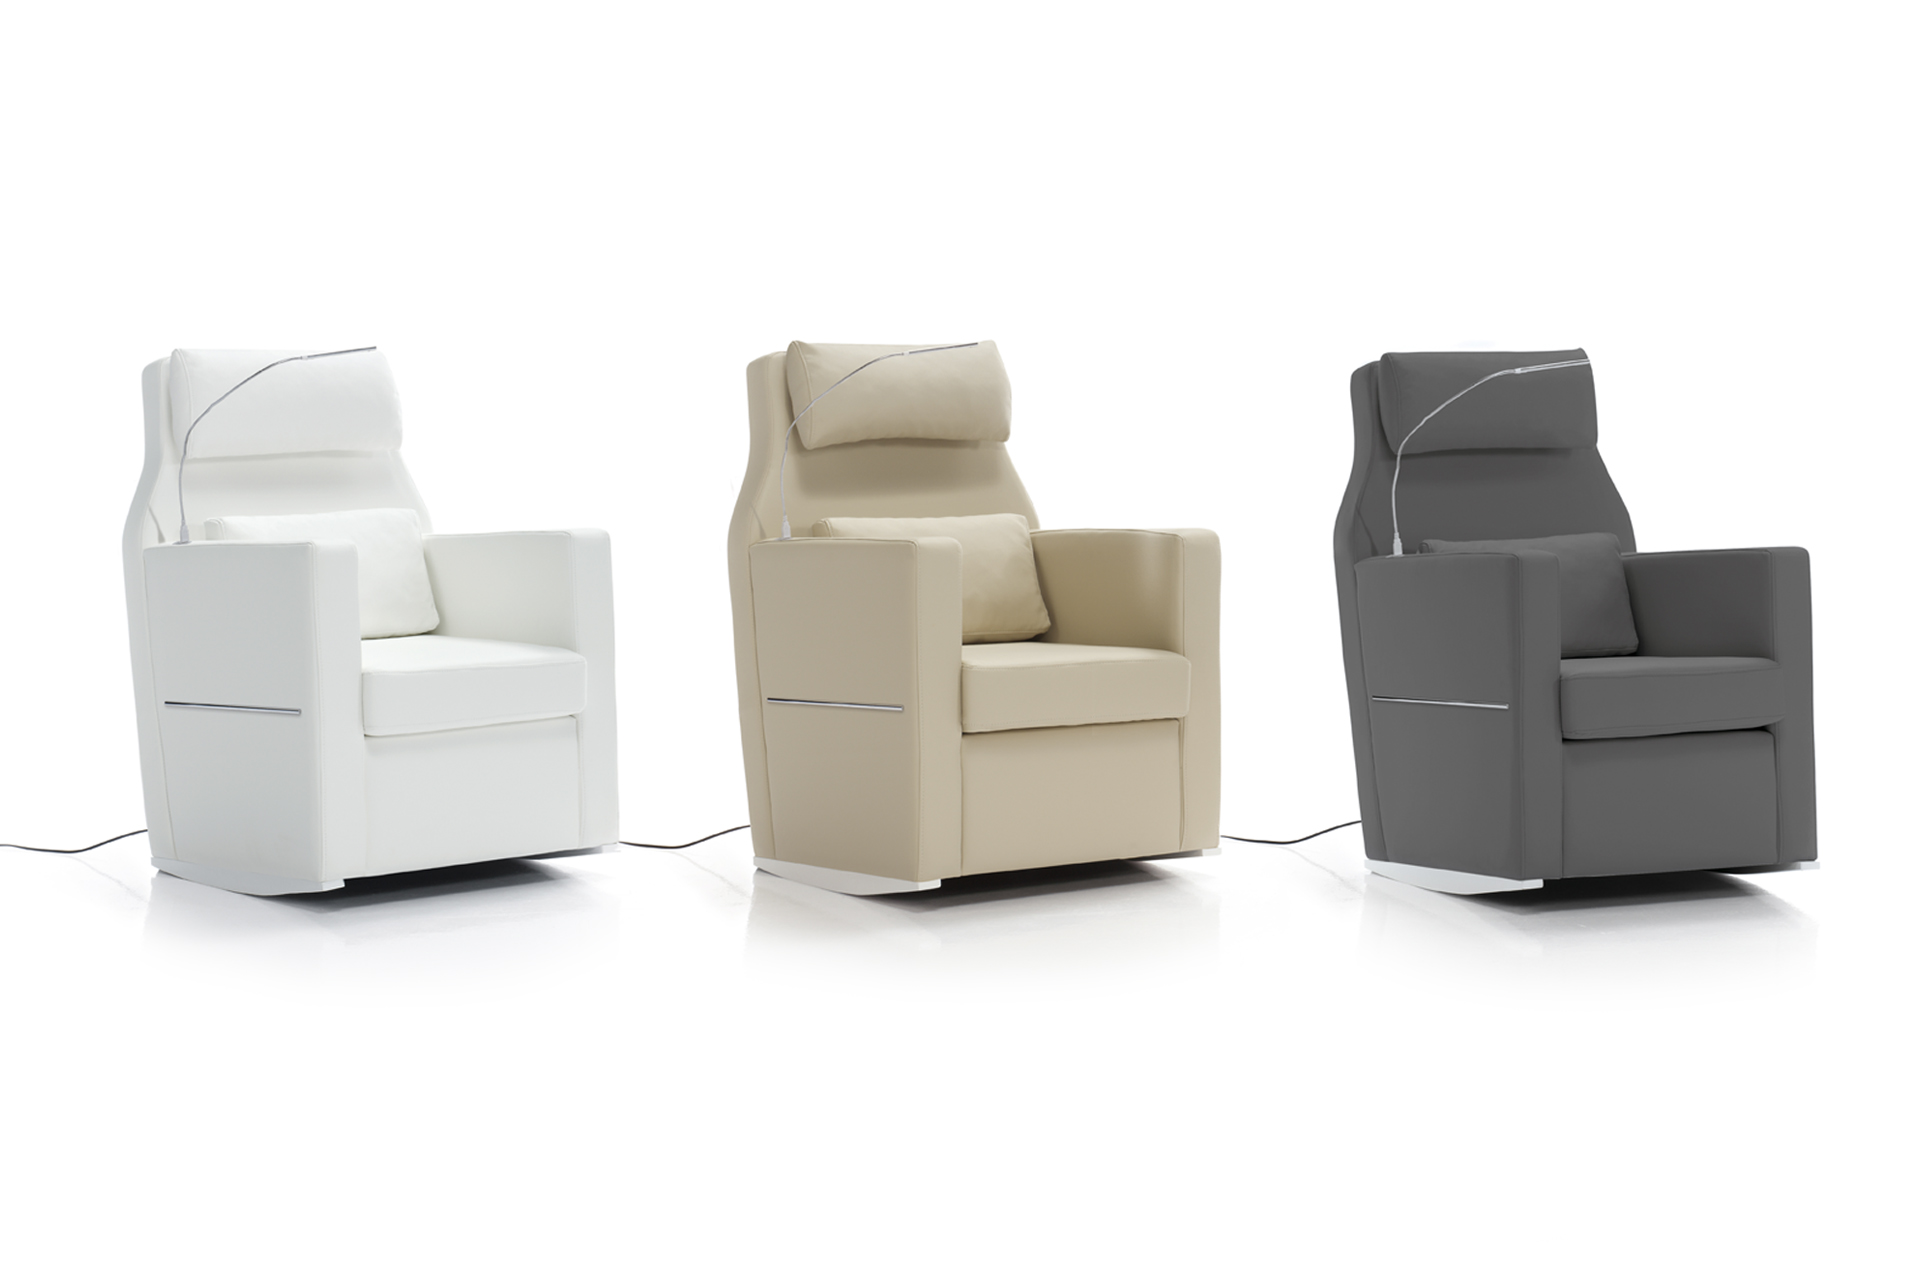 Nursing chairs - Ergo Luxe Collection